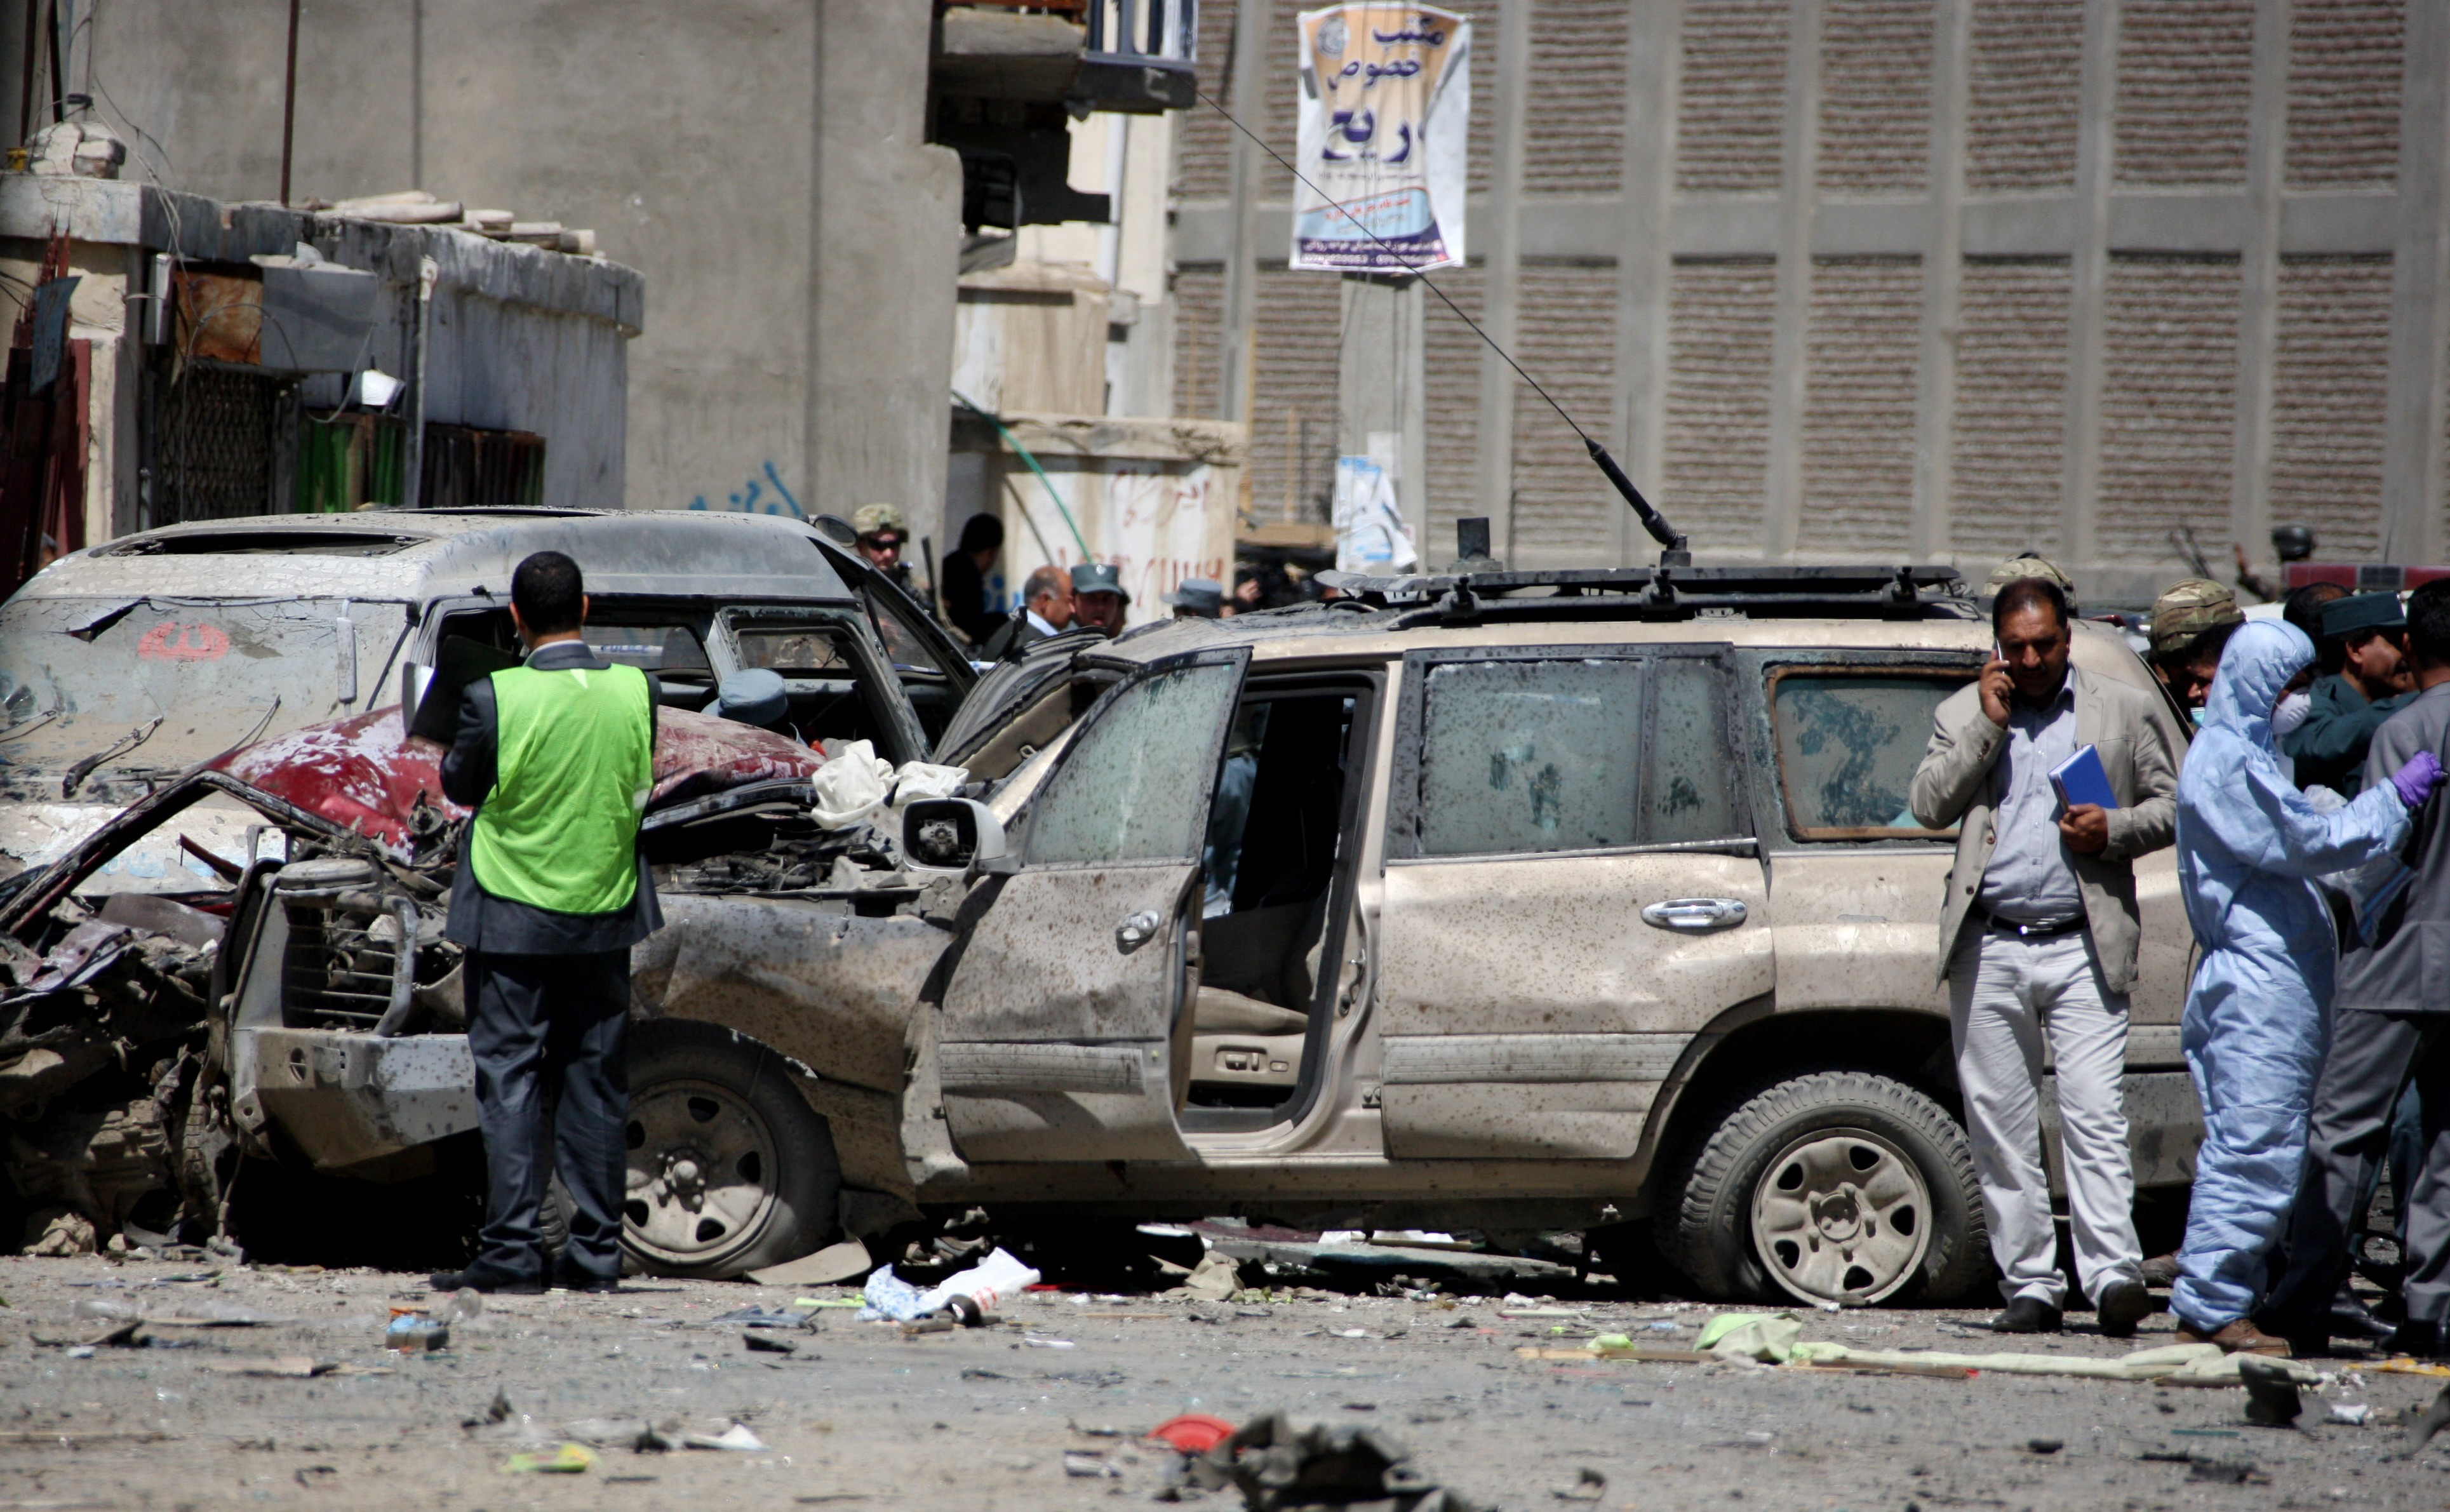 British national killed in Afghanistan terrorist bomb attack